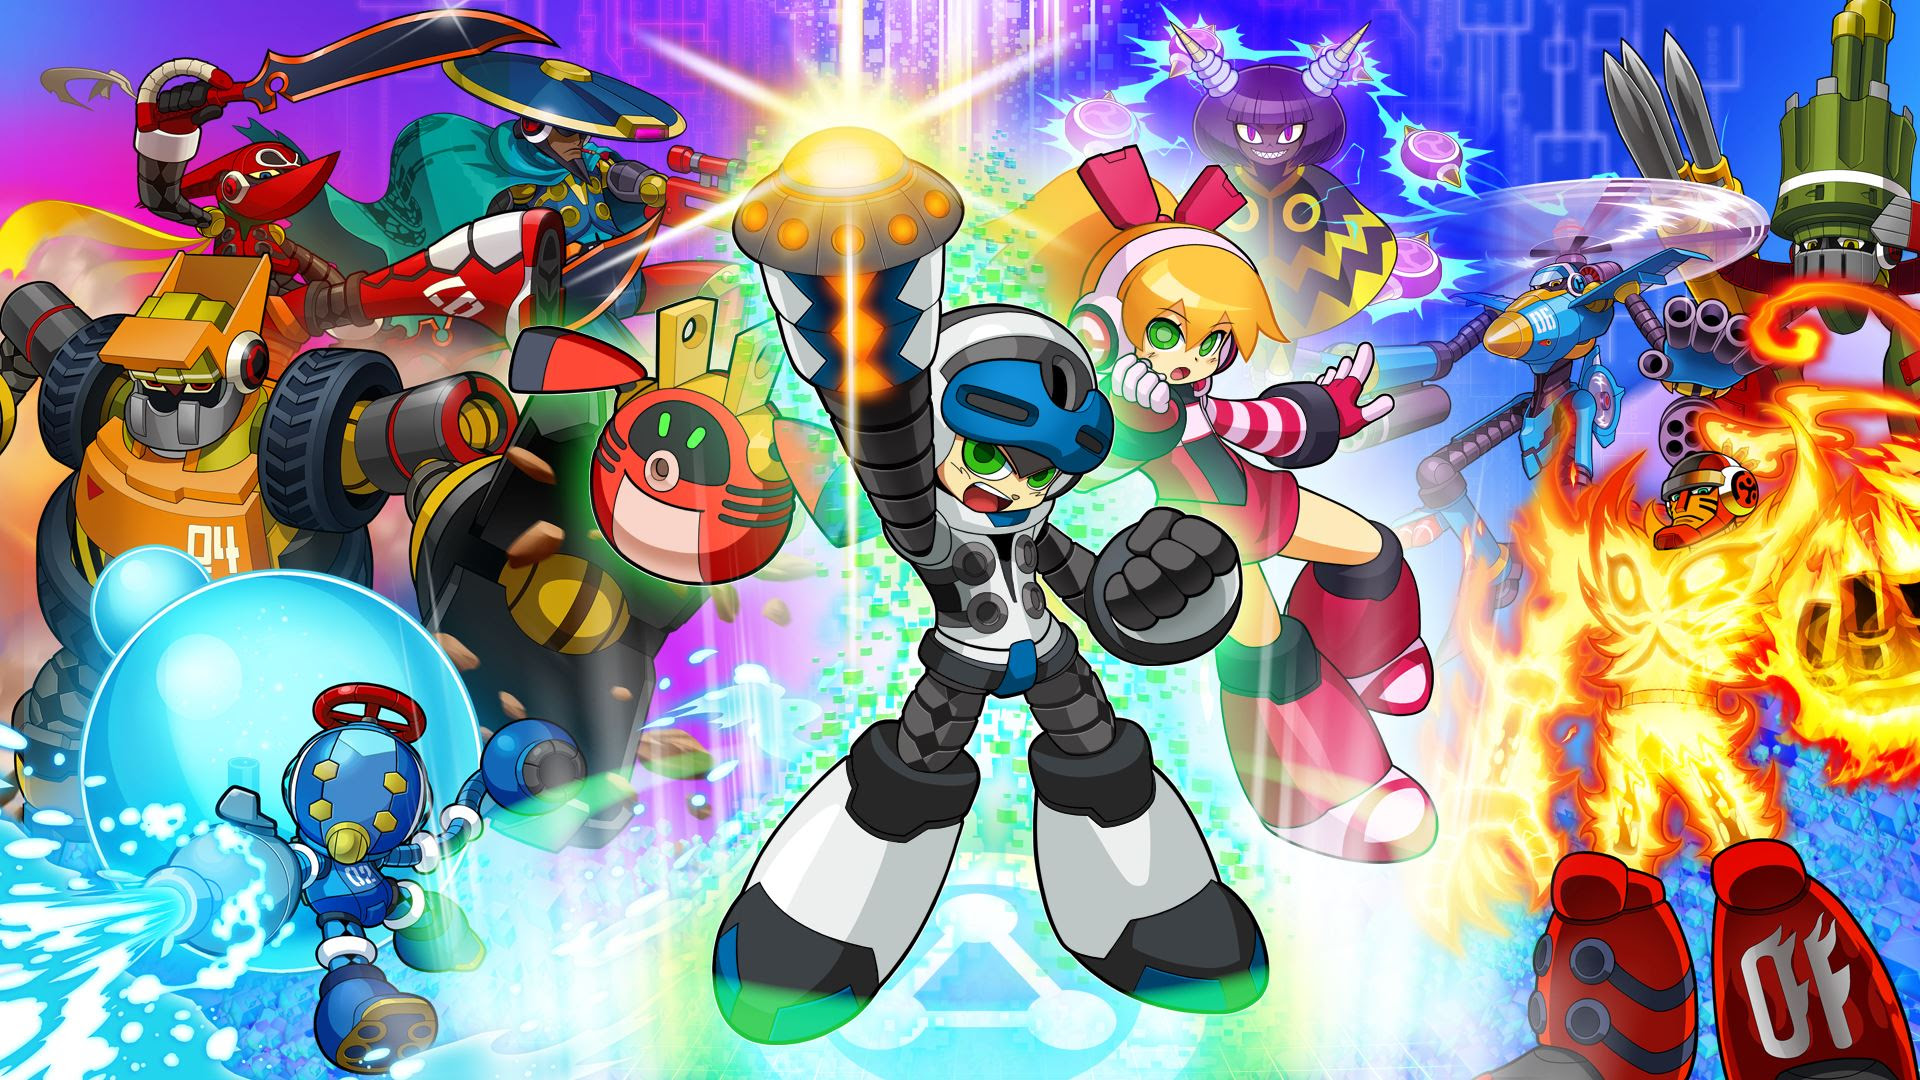 One year after launch, Mighty No. 9 physical rewards MIGHT be going out screenshot